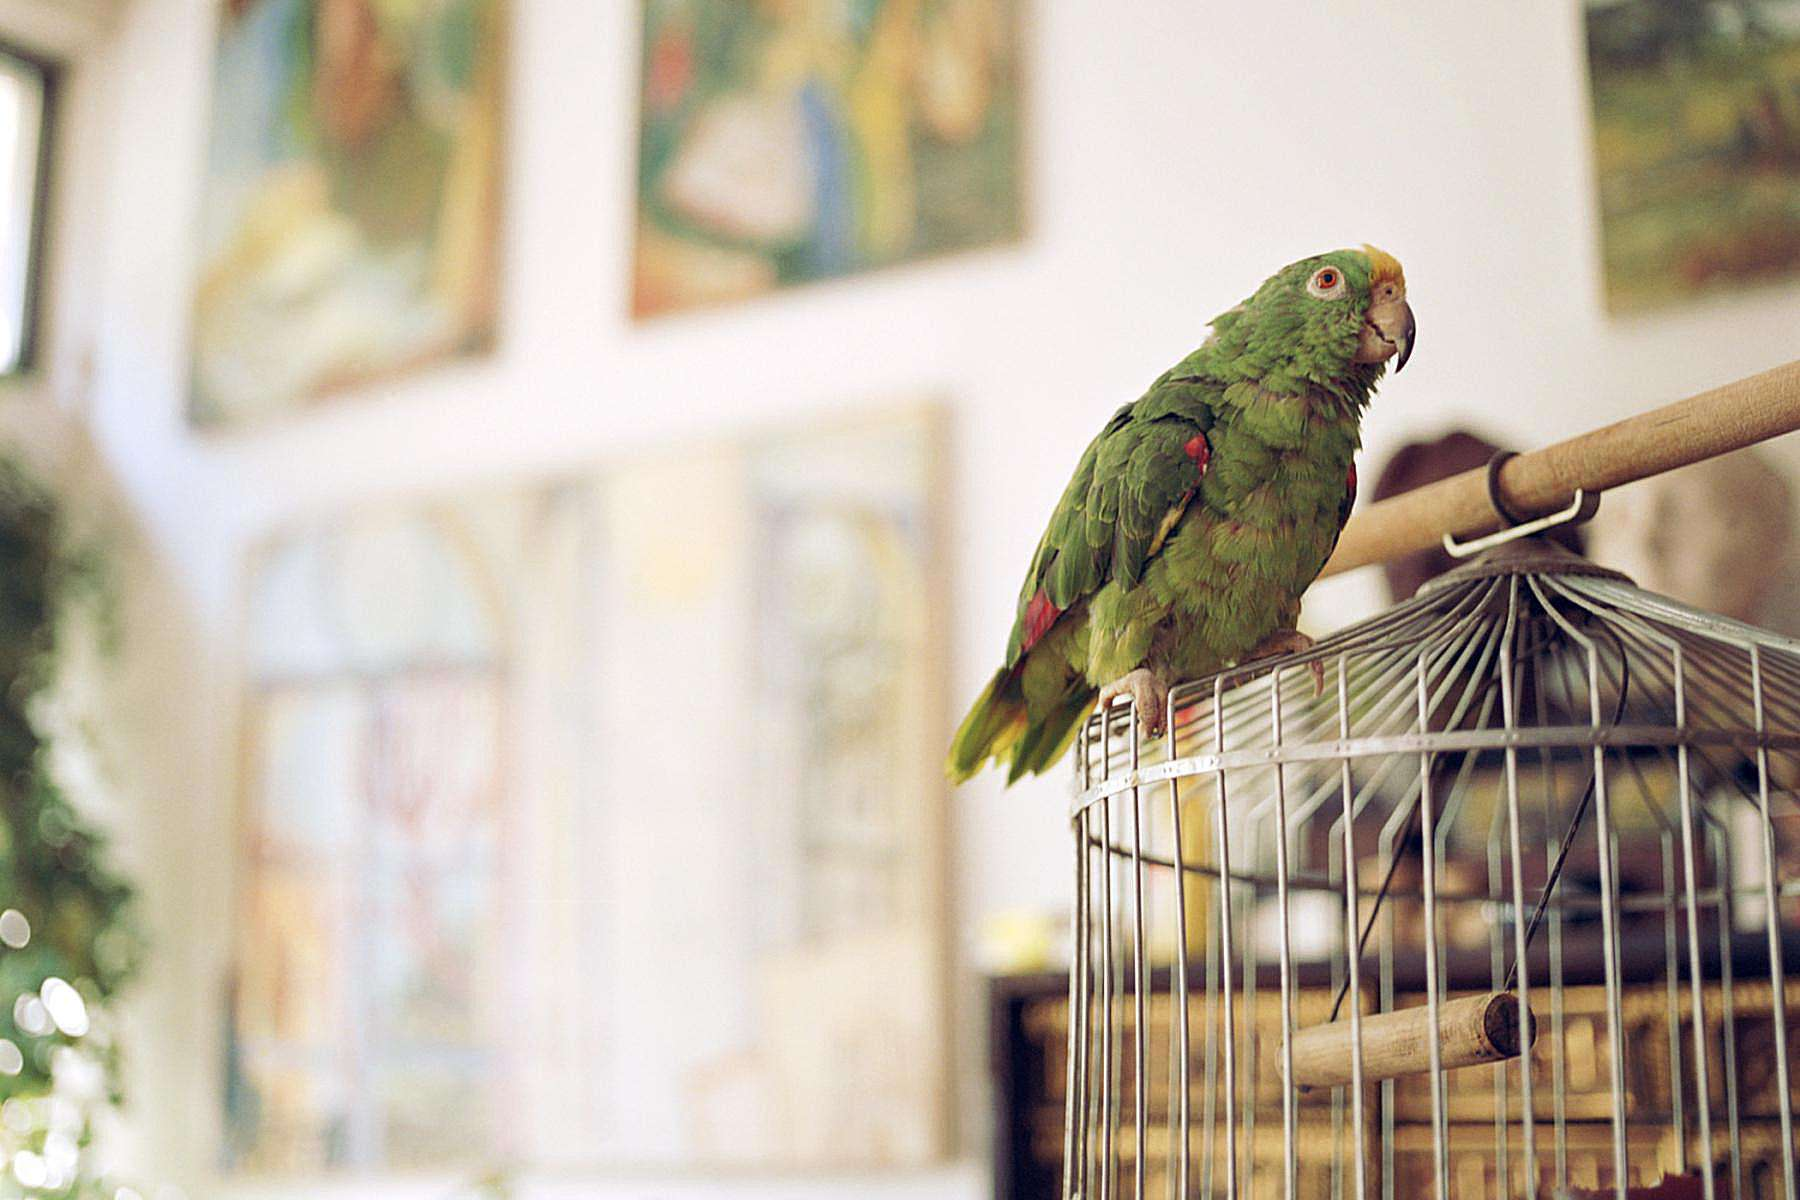 Parrot standing on a cage